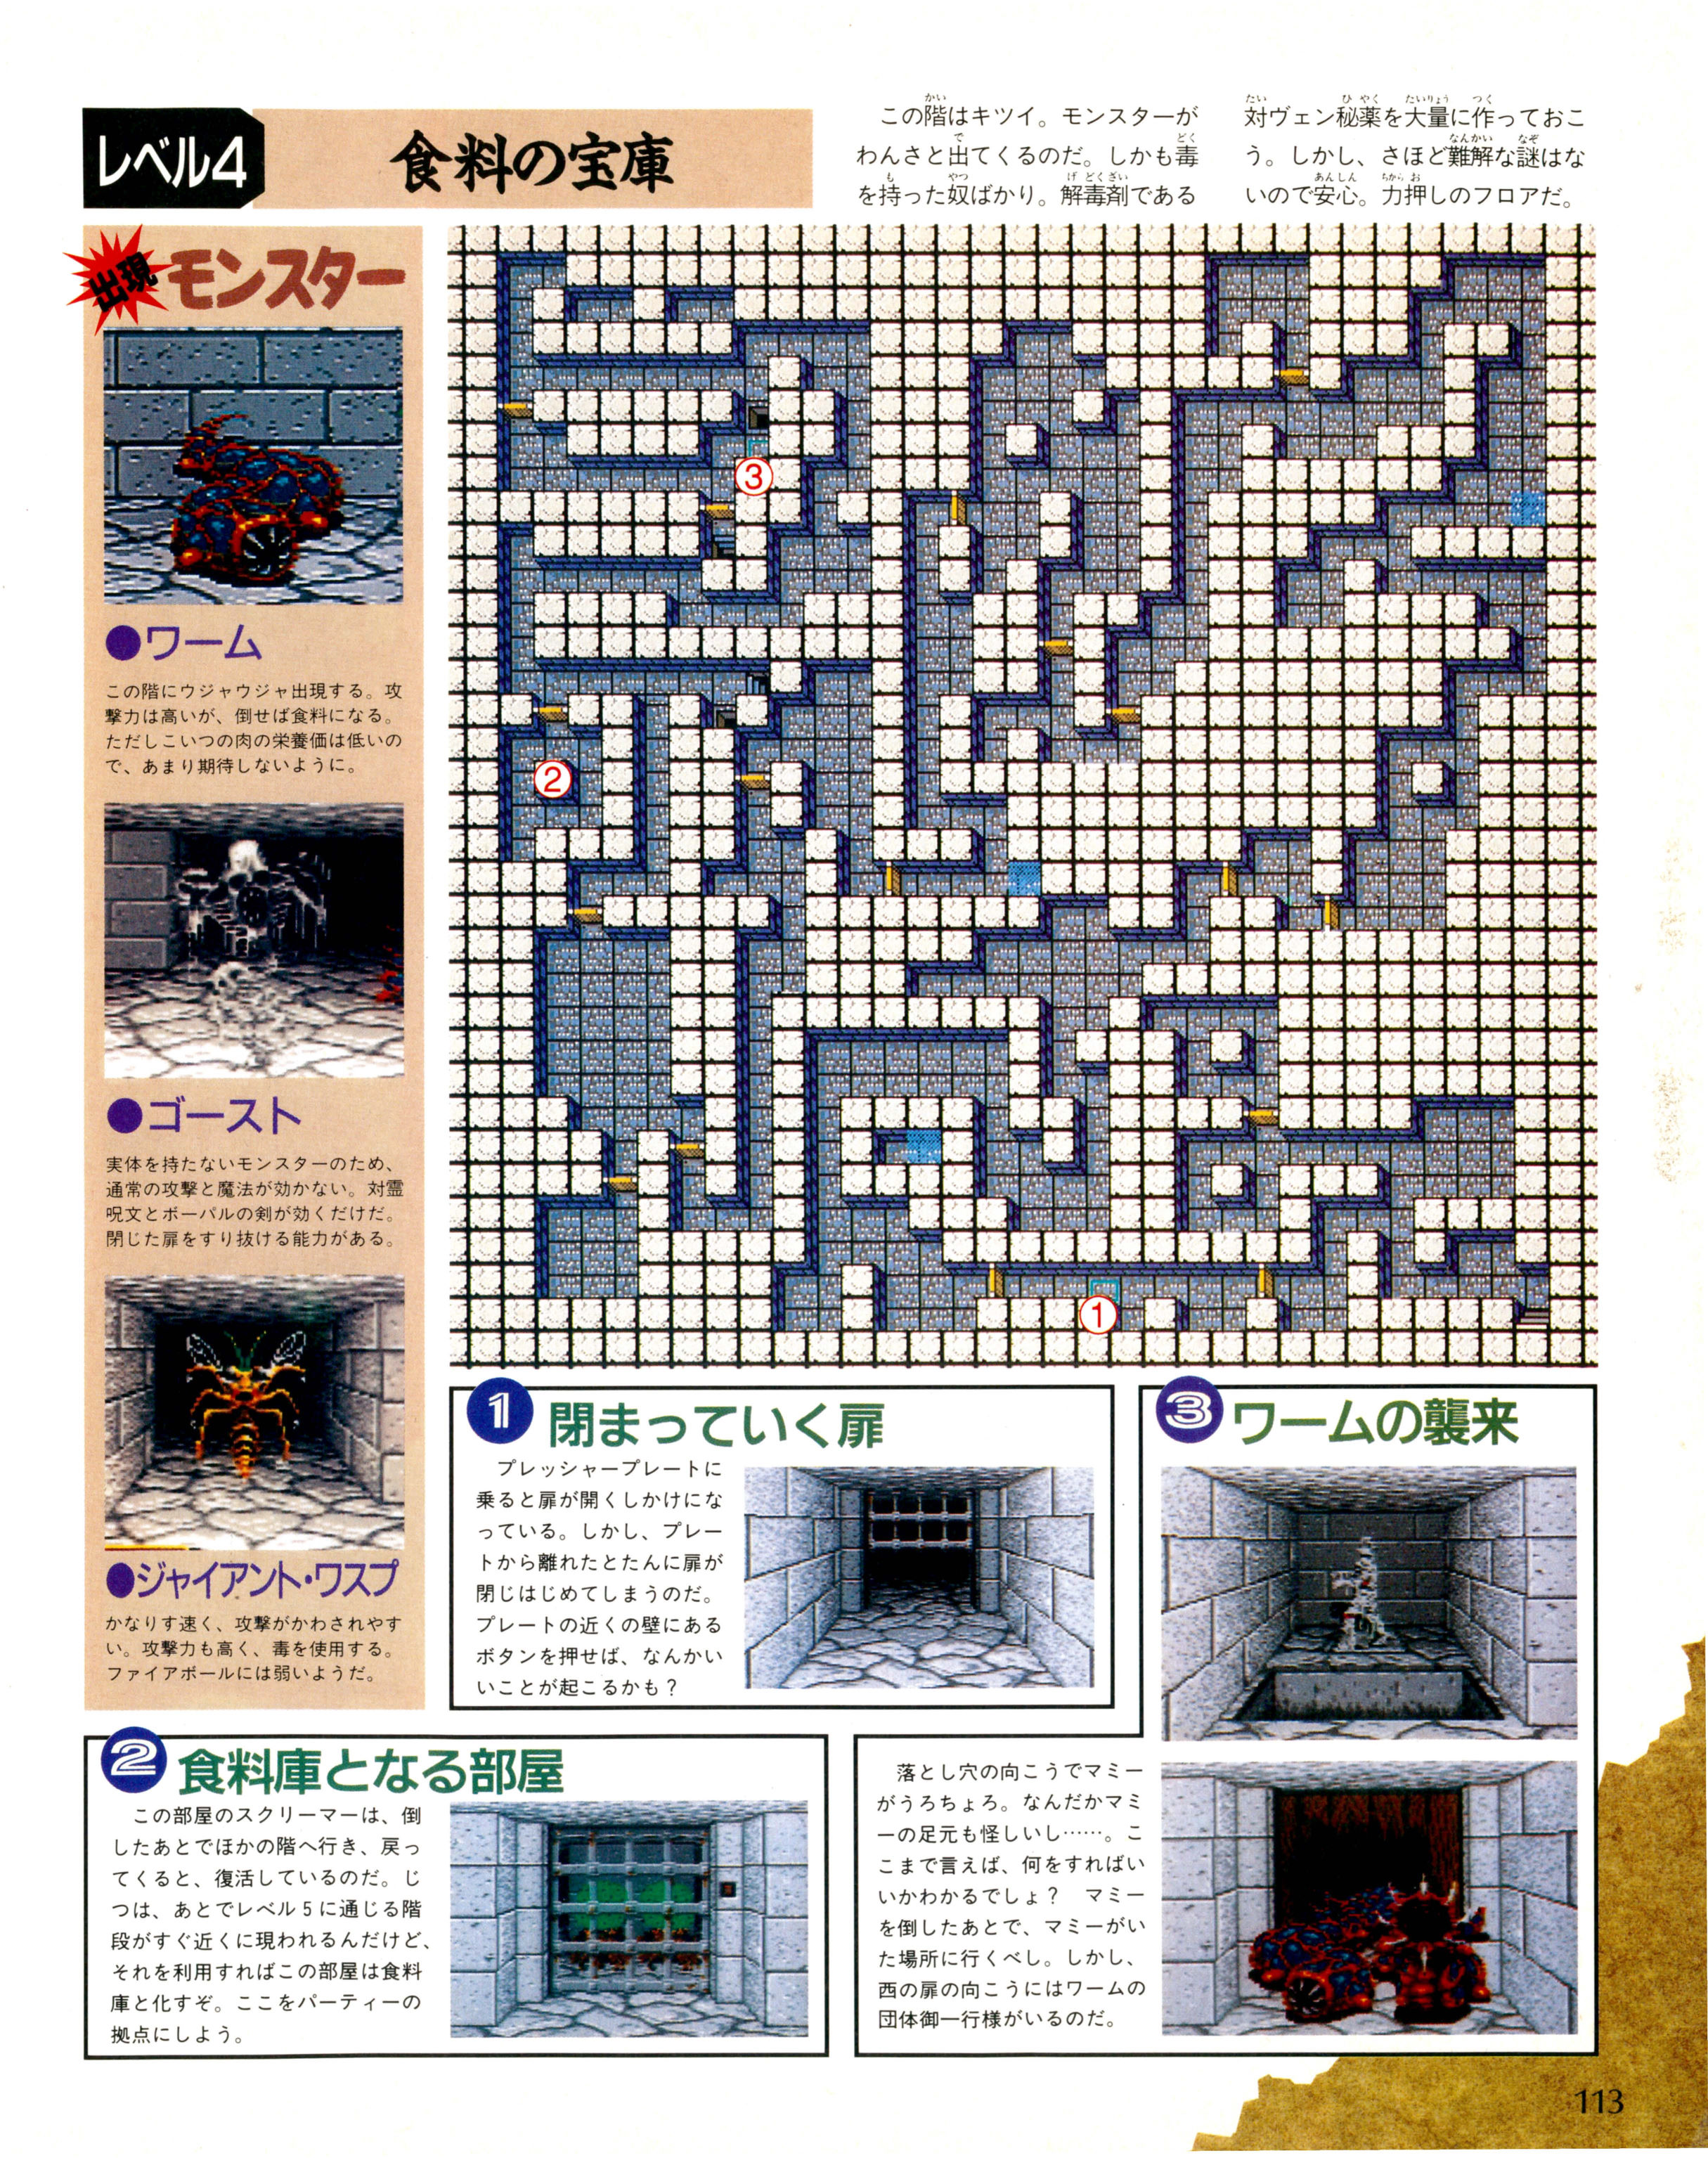 Dungeon Master for Super Famicom Guide published in Japanese magazine 'Famitsu', Issue #159 03 January 1992, Page 113